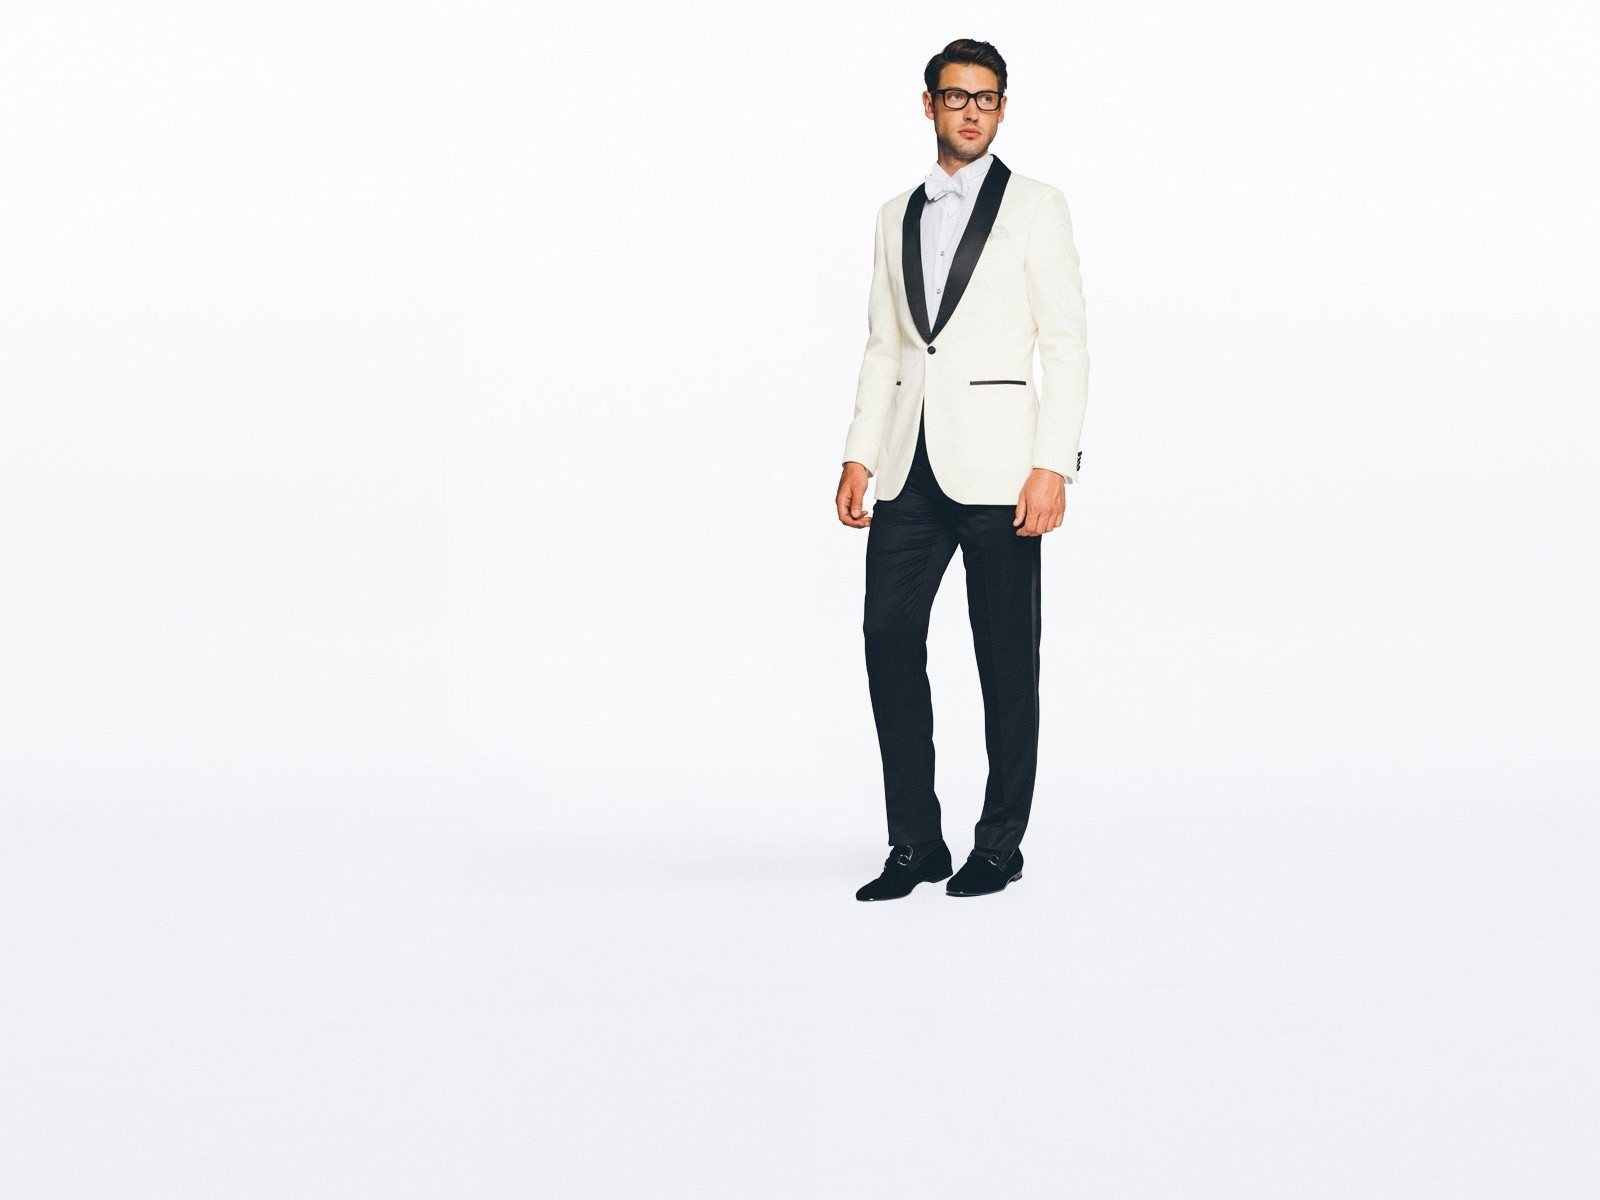 Hampton Black and Ivory Tuxedo